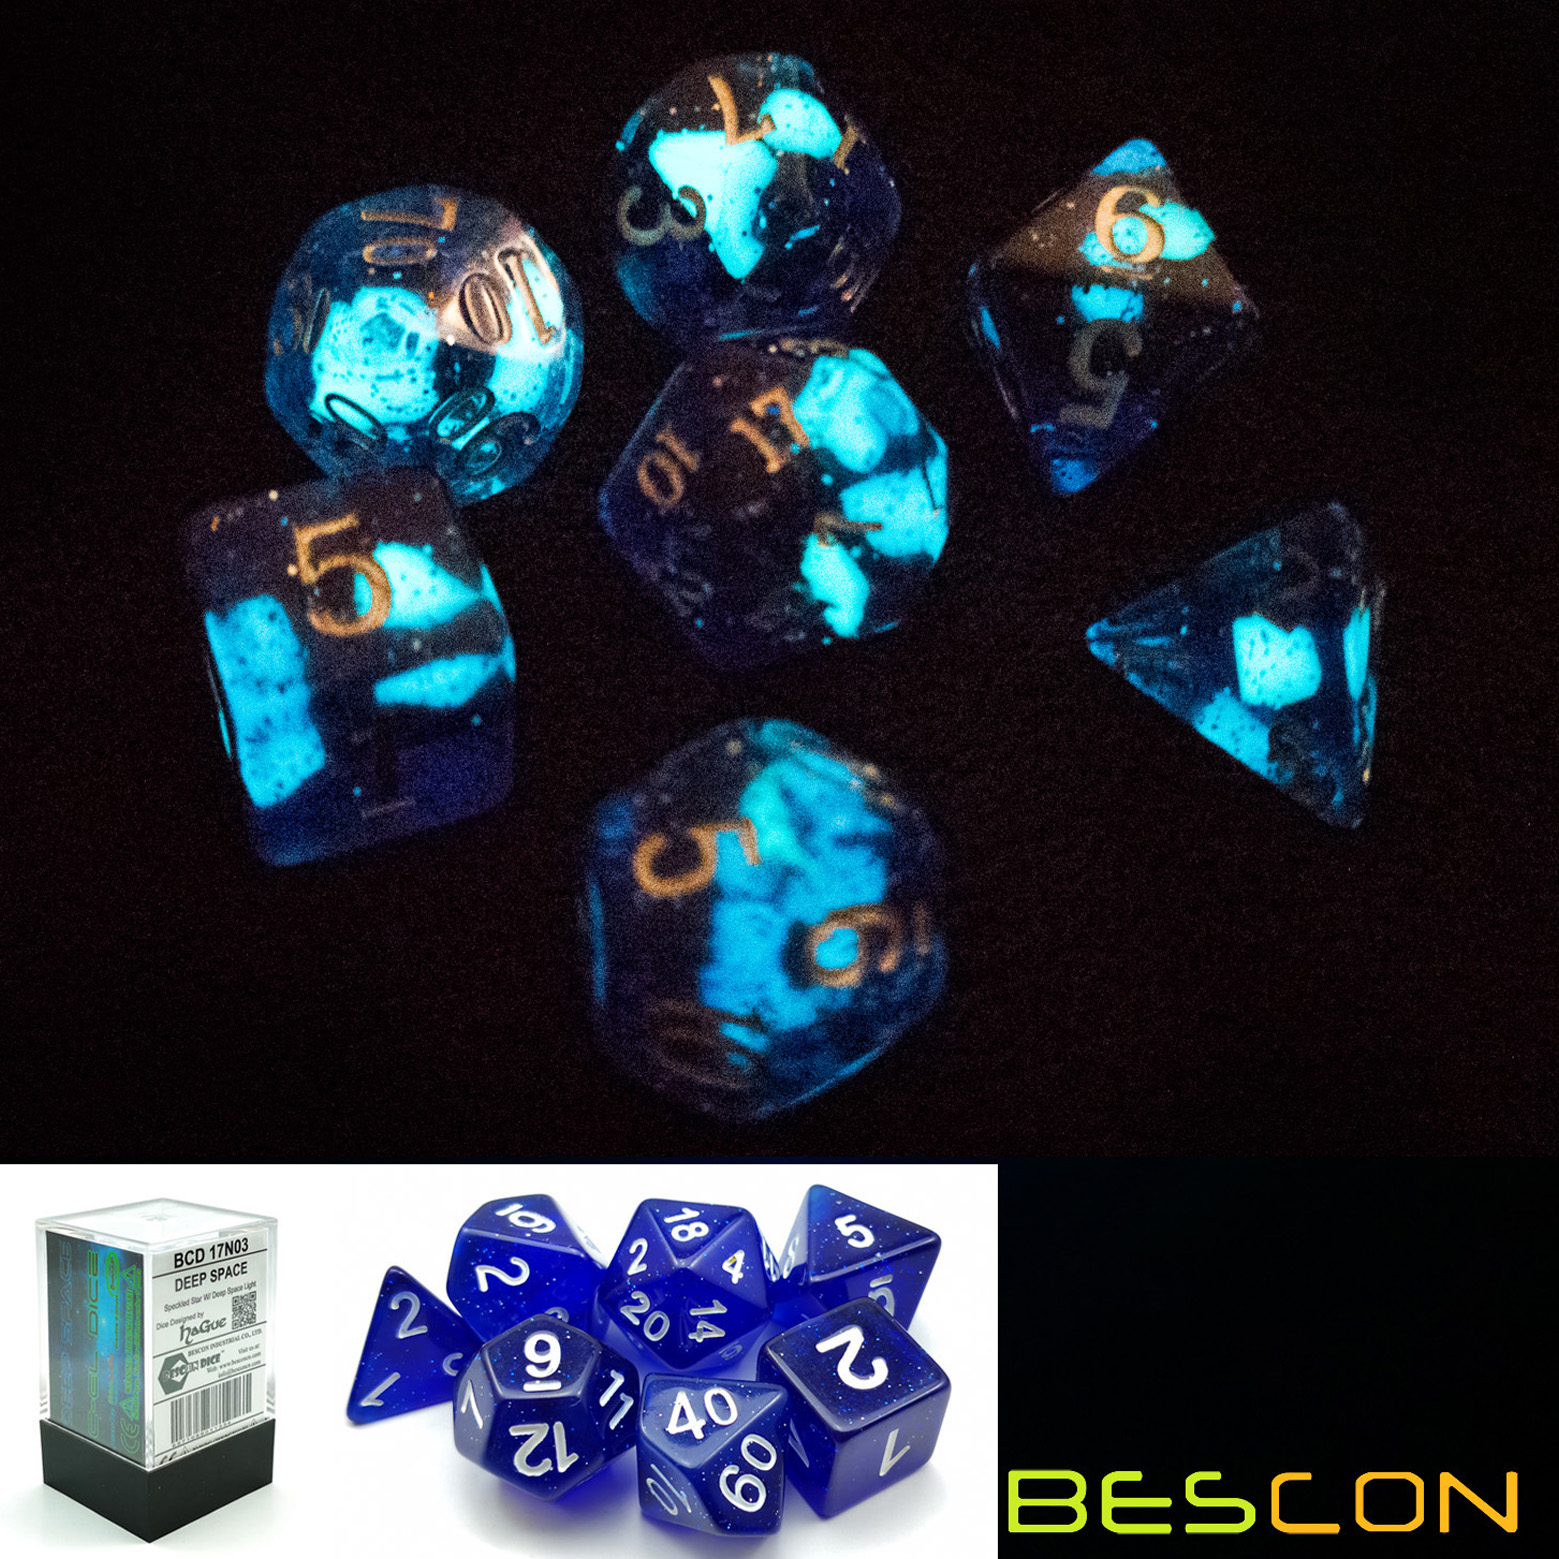 Bescon Super Glow In The Dark Glitter Polyhedral Dice Set DEEP SPACE, Luminous RPG Dice Set,Glowing Novelty DND Game Dice